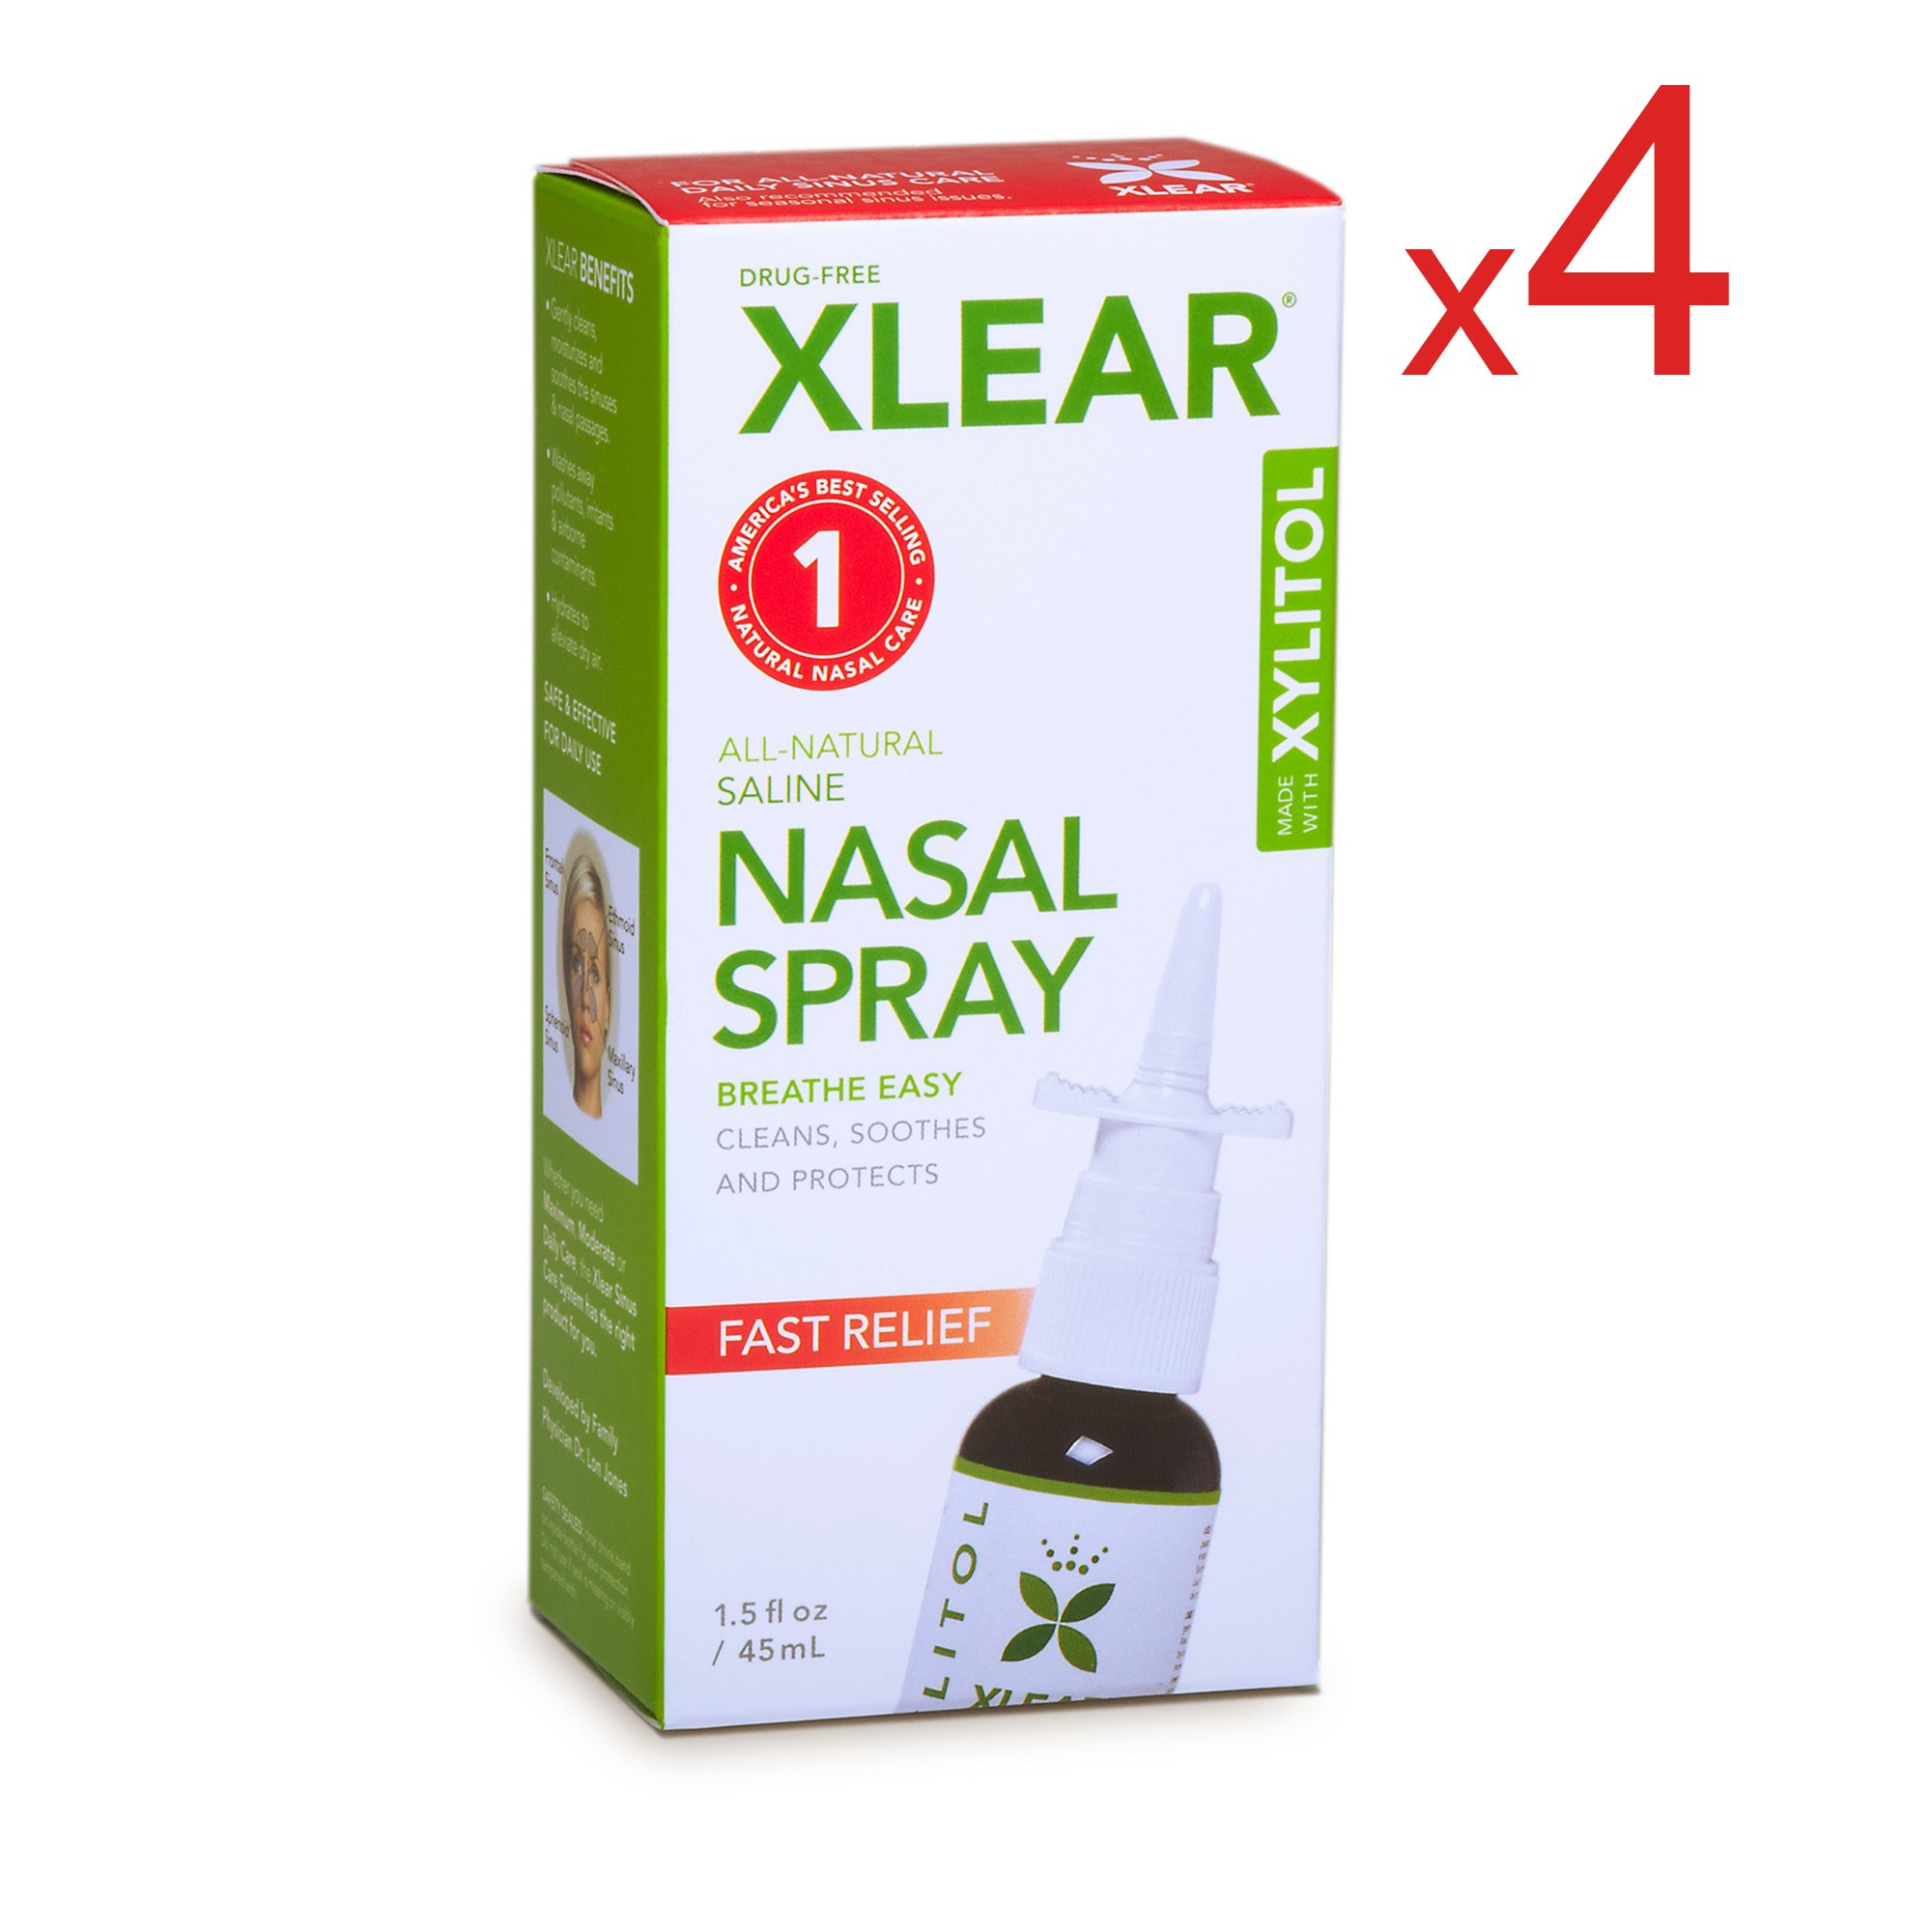 XLEAR Nasal Spray, 1.5 oz. (4 Pack) Natural Saline and Xylitol Moisturizing Sinus Care - Immediate and Drug Free Relief From Congestion, Allergies, and Dry Sinuses